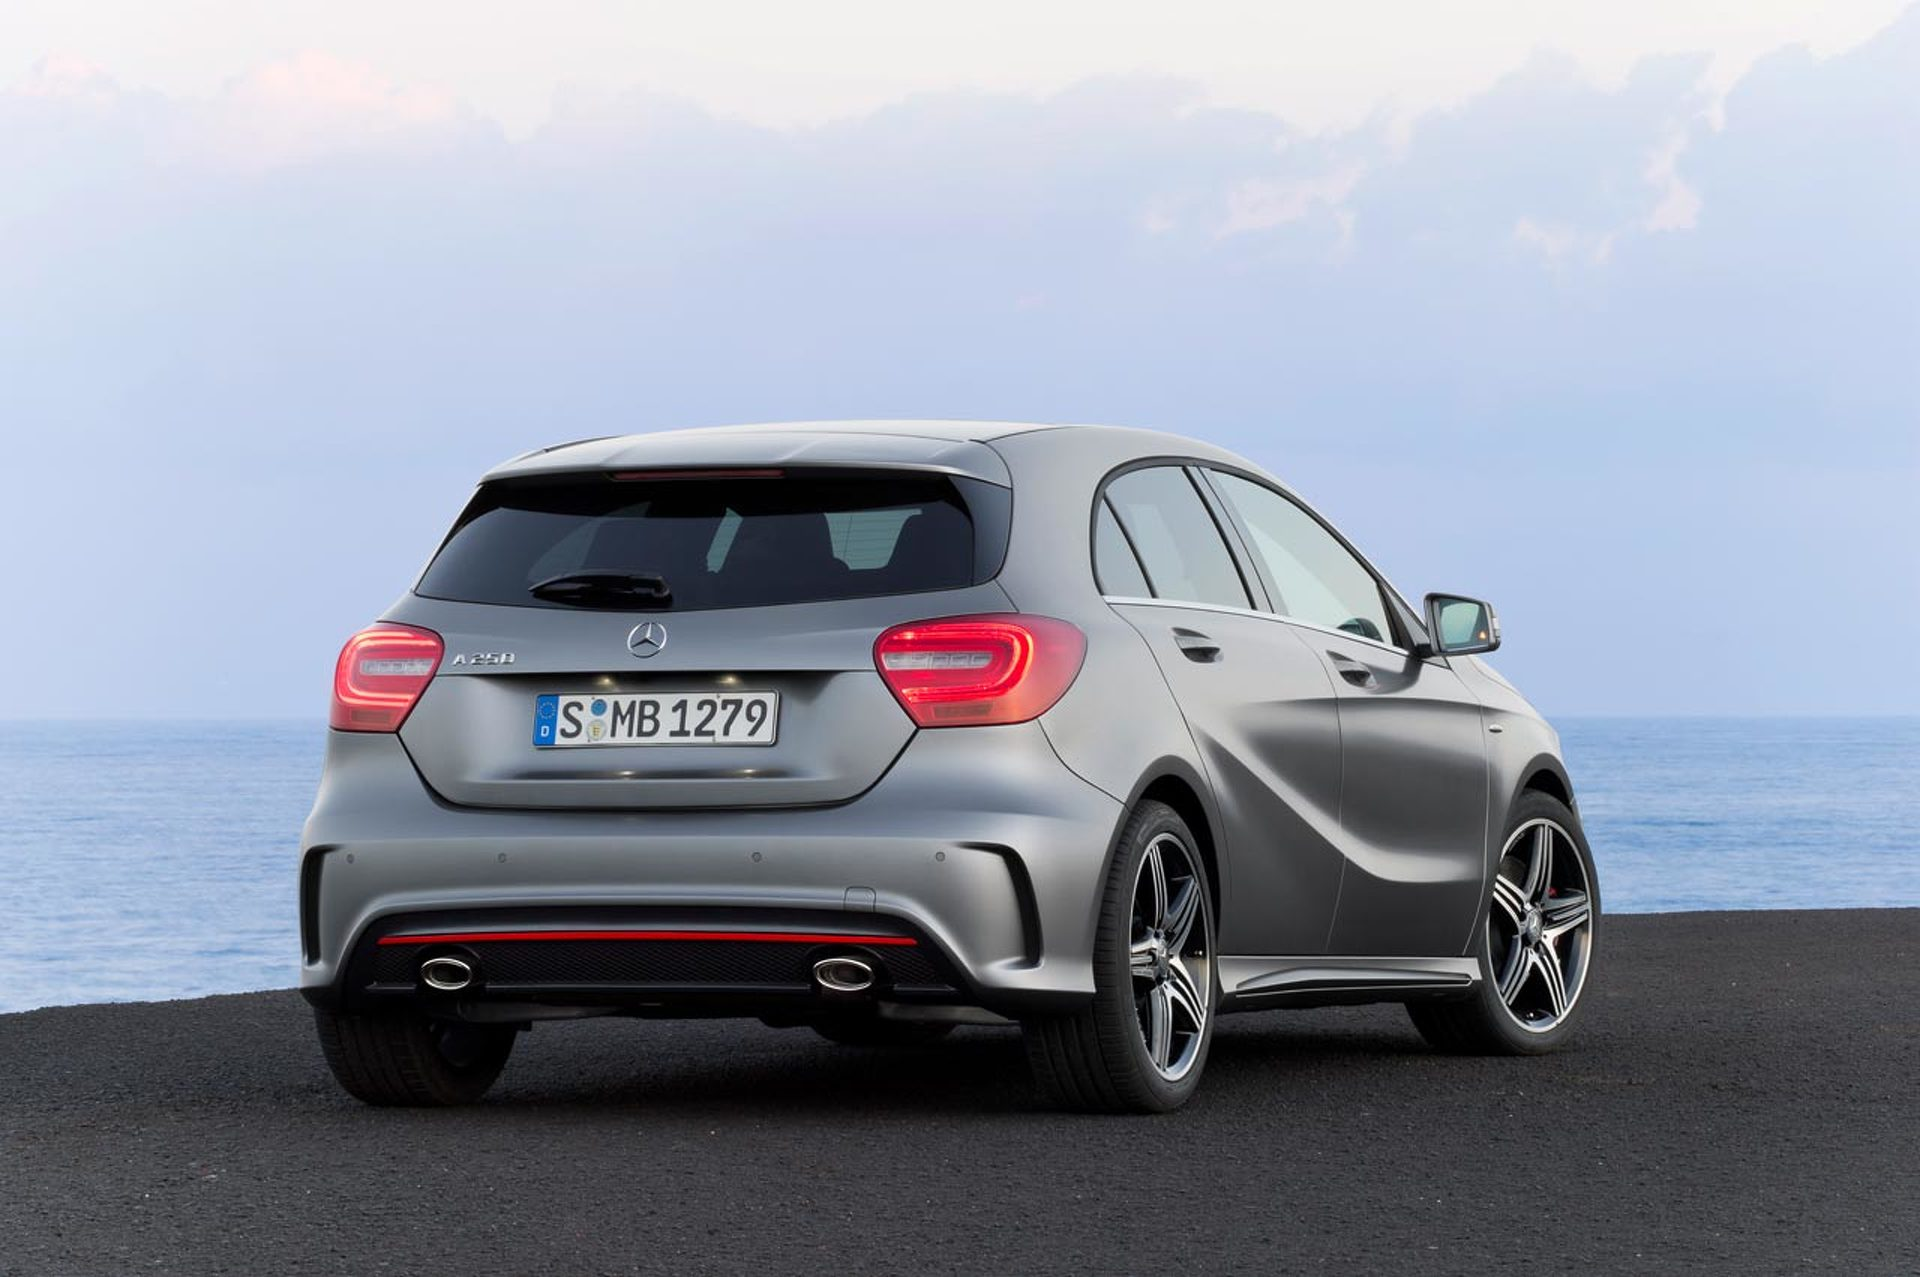 Unveiled: More Details on the Baby AMG Mercedes